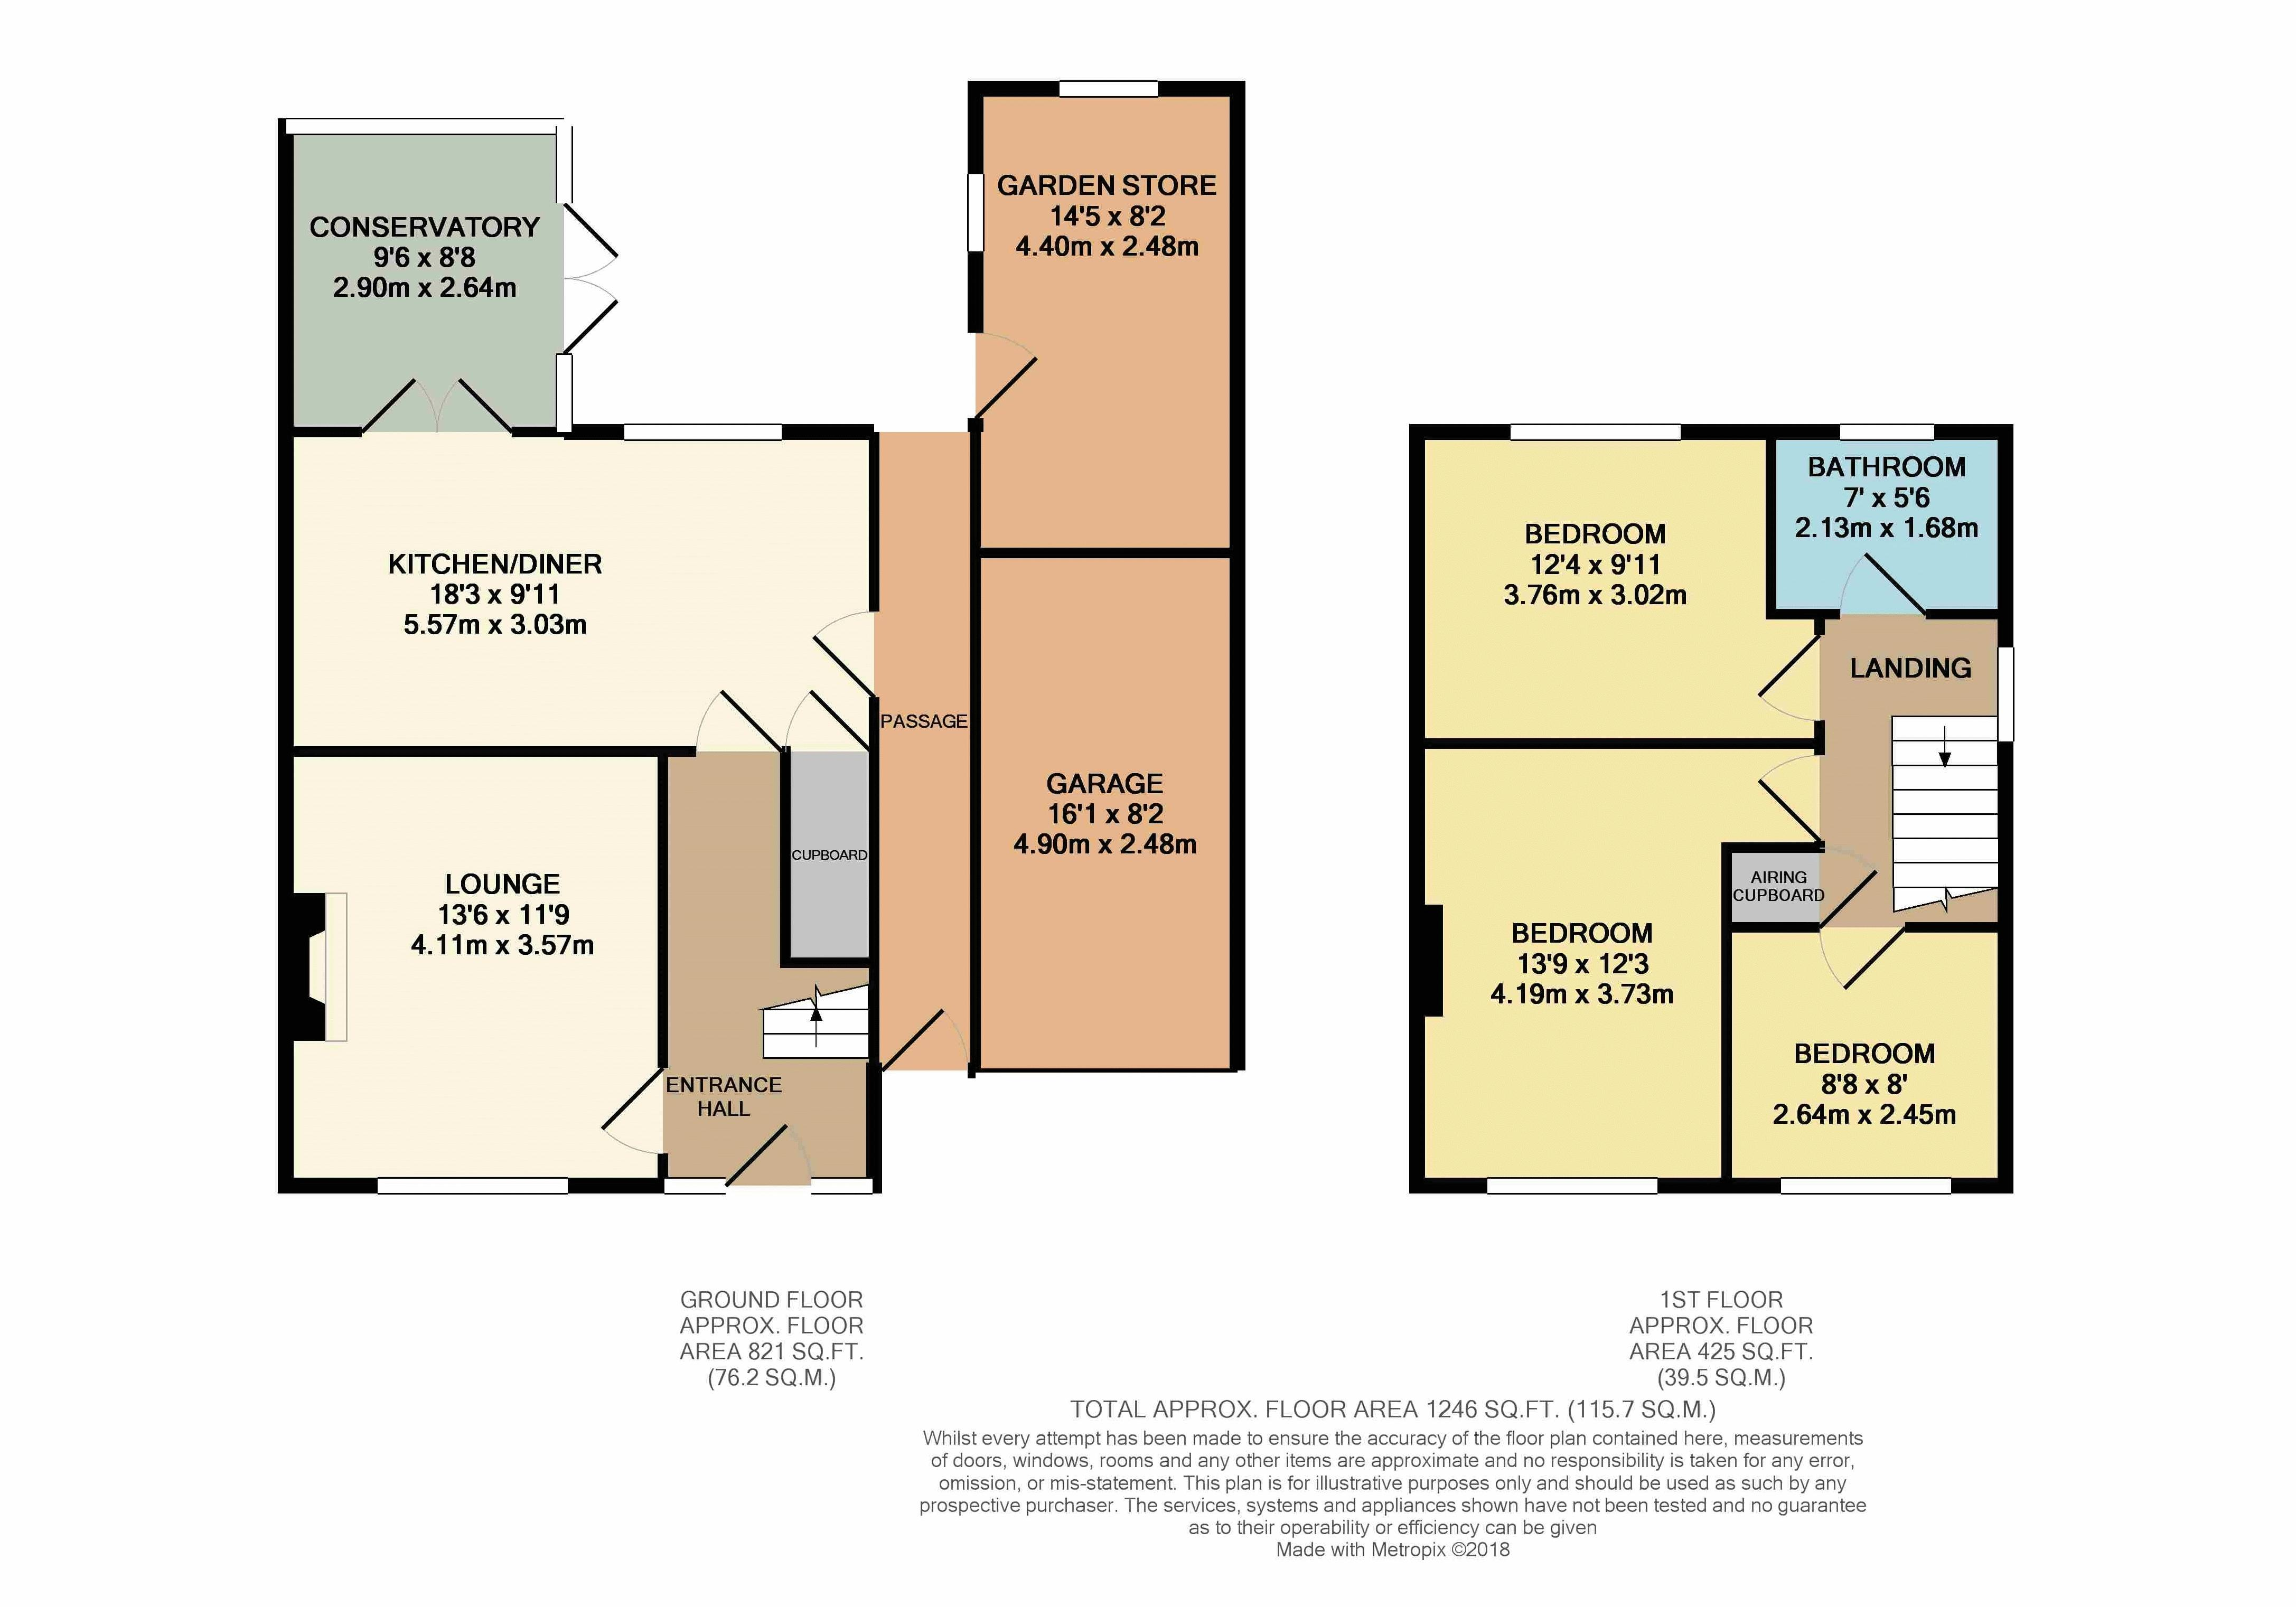 3 bedroom semi detached house for sale in luton for How much is a bedroom worth in an appraisal